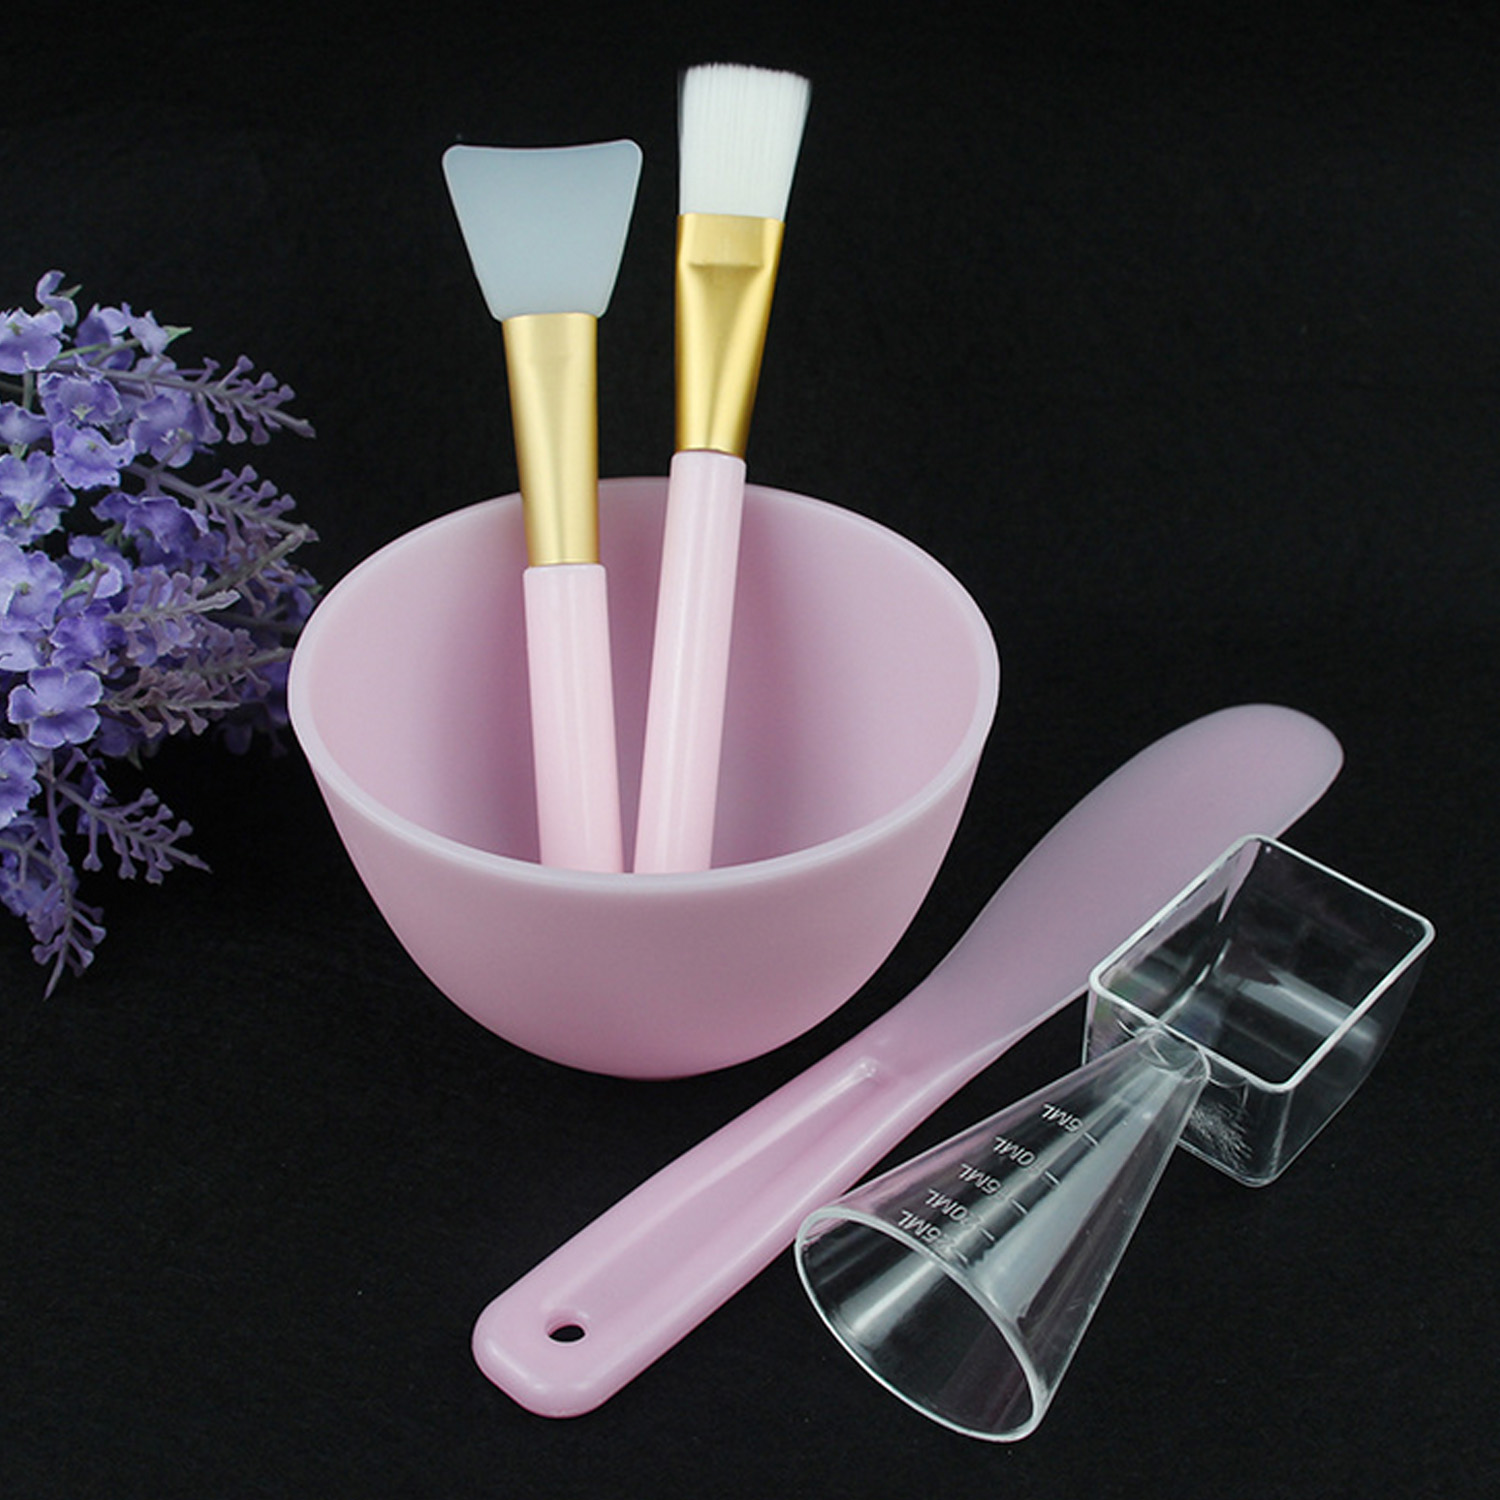 5pcs DIY Face Mask Mixing Tools Set Home Facial Eye Body Mask Mud Mixing Lady Girls Home Mask Mixing Bowl Brushes Applicator Set